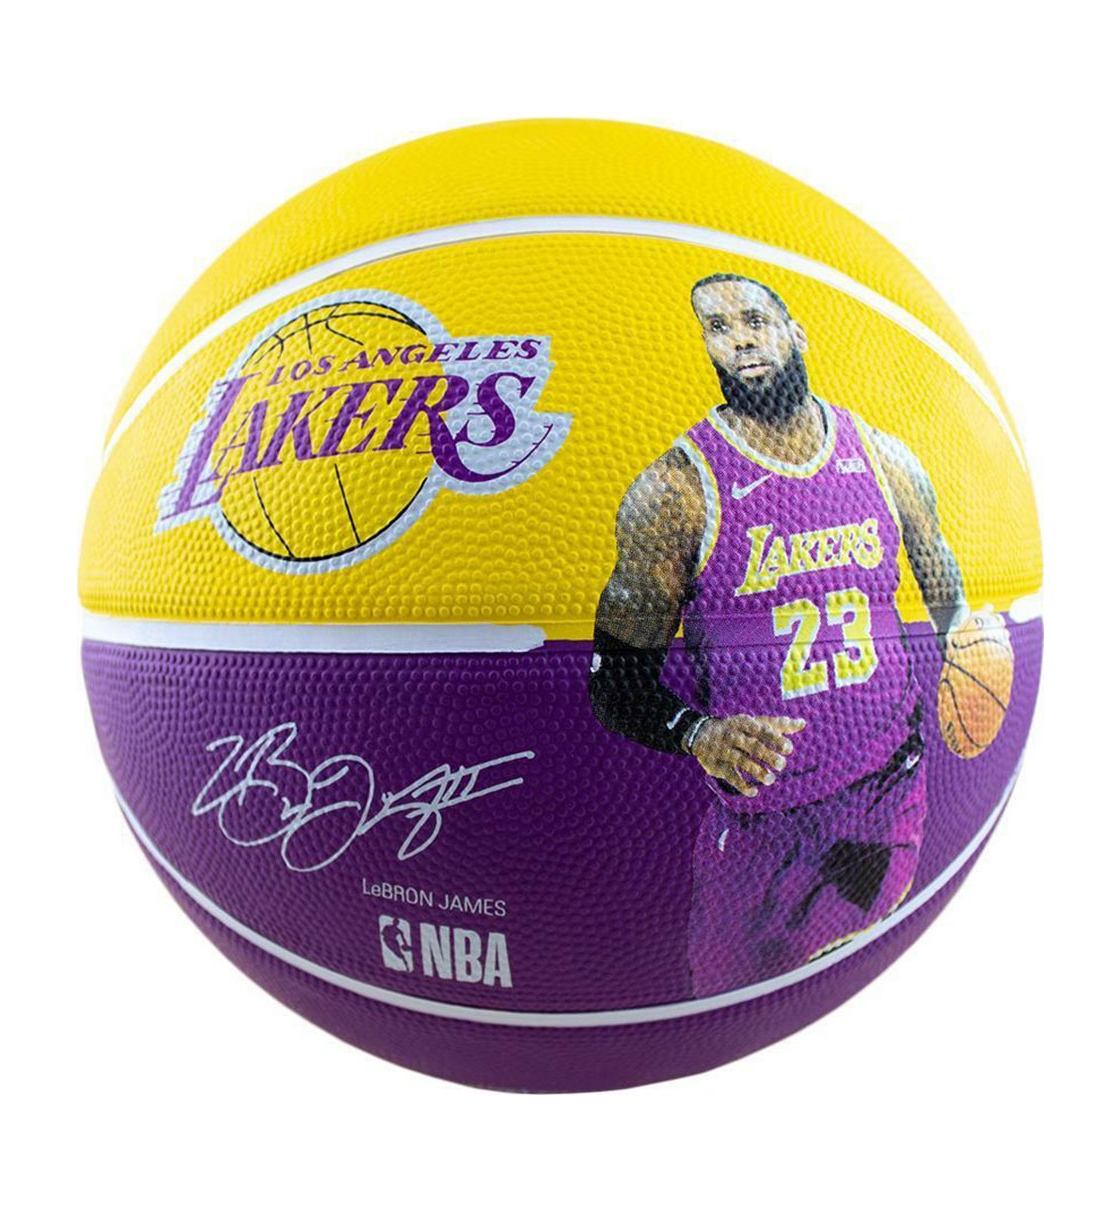 Spalding Ss21 New Nba Player Lakers Lebron James Size 7